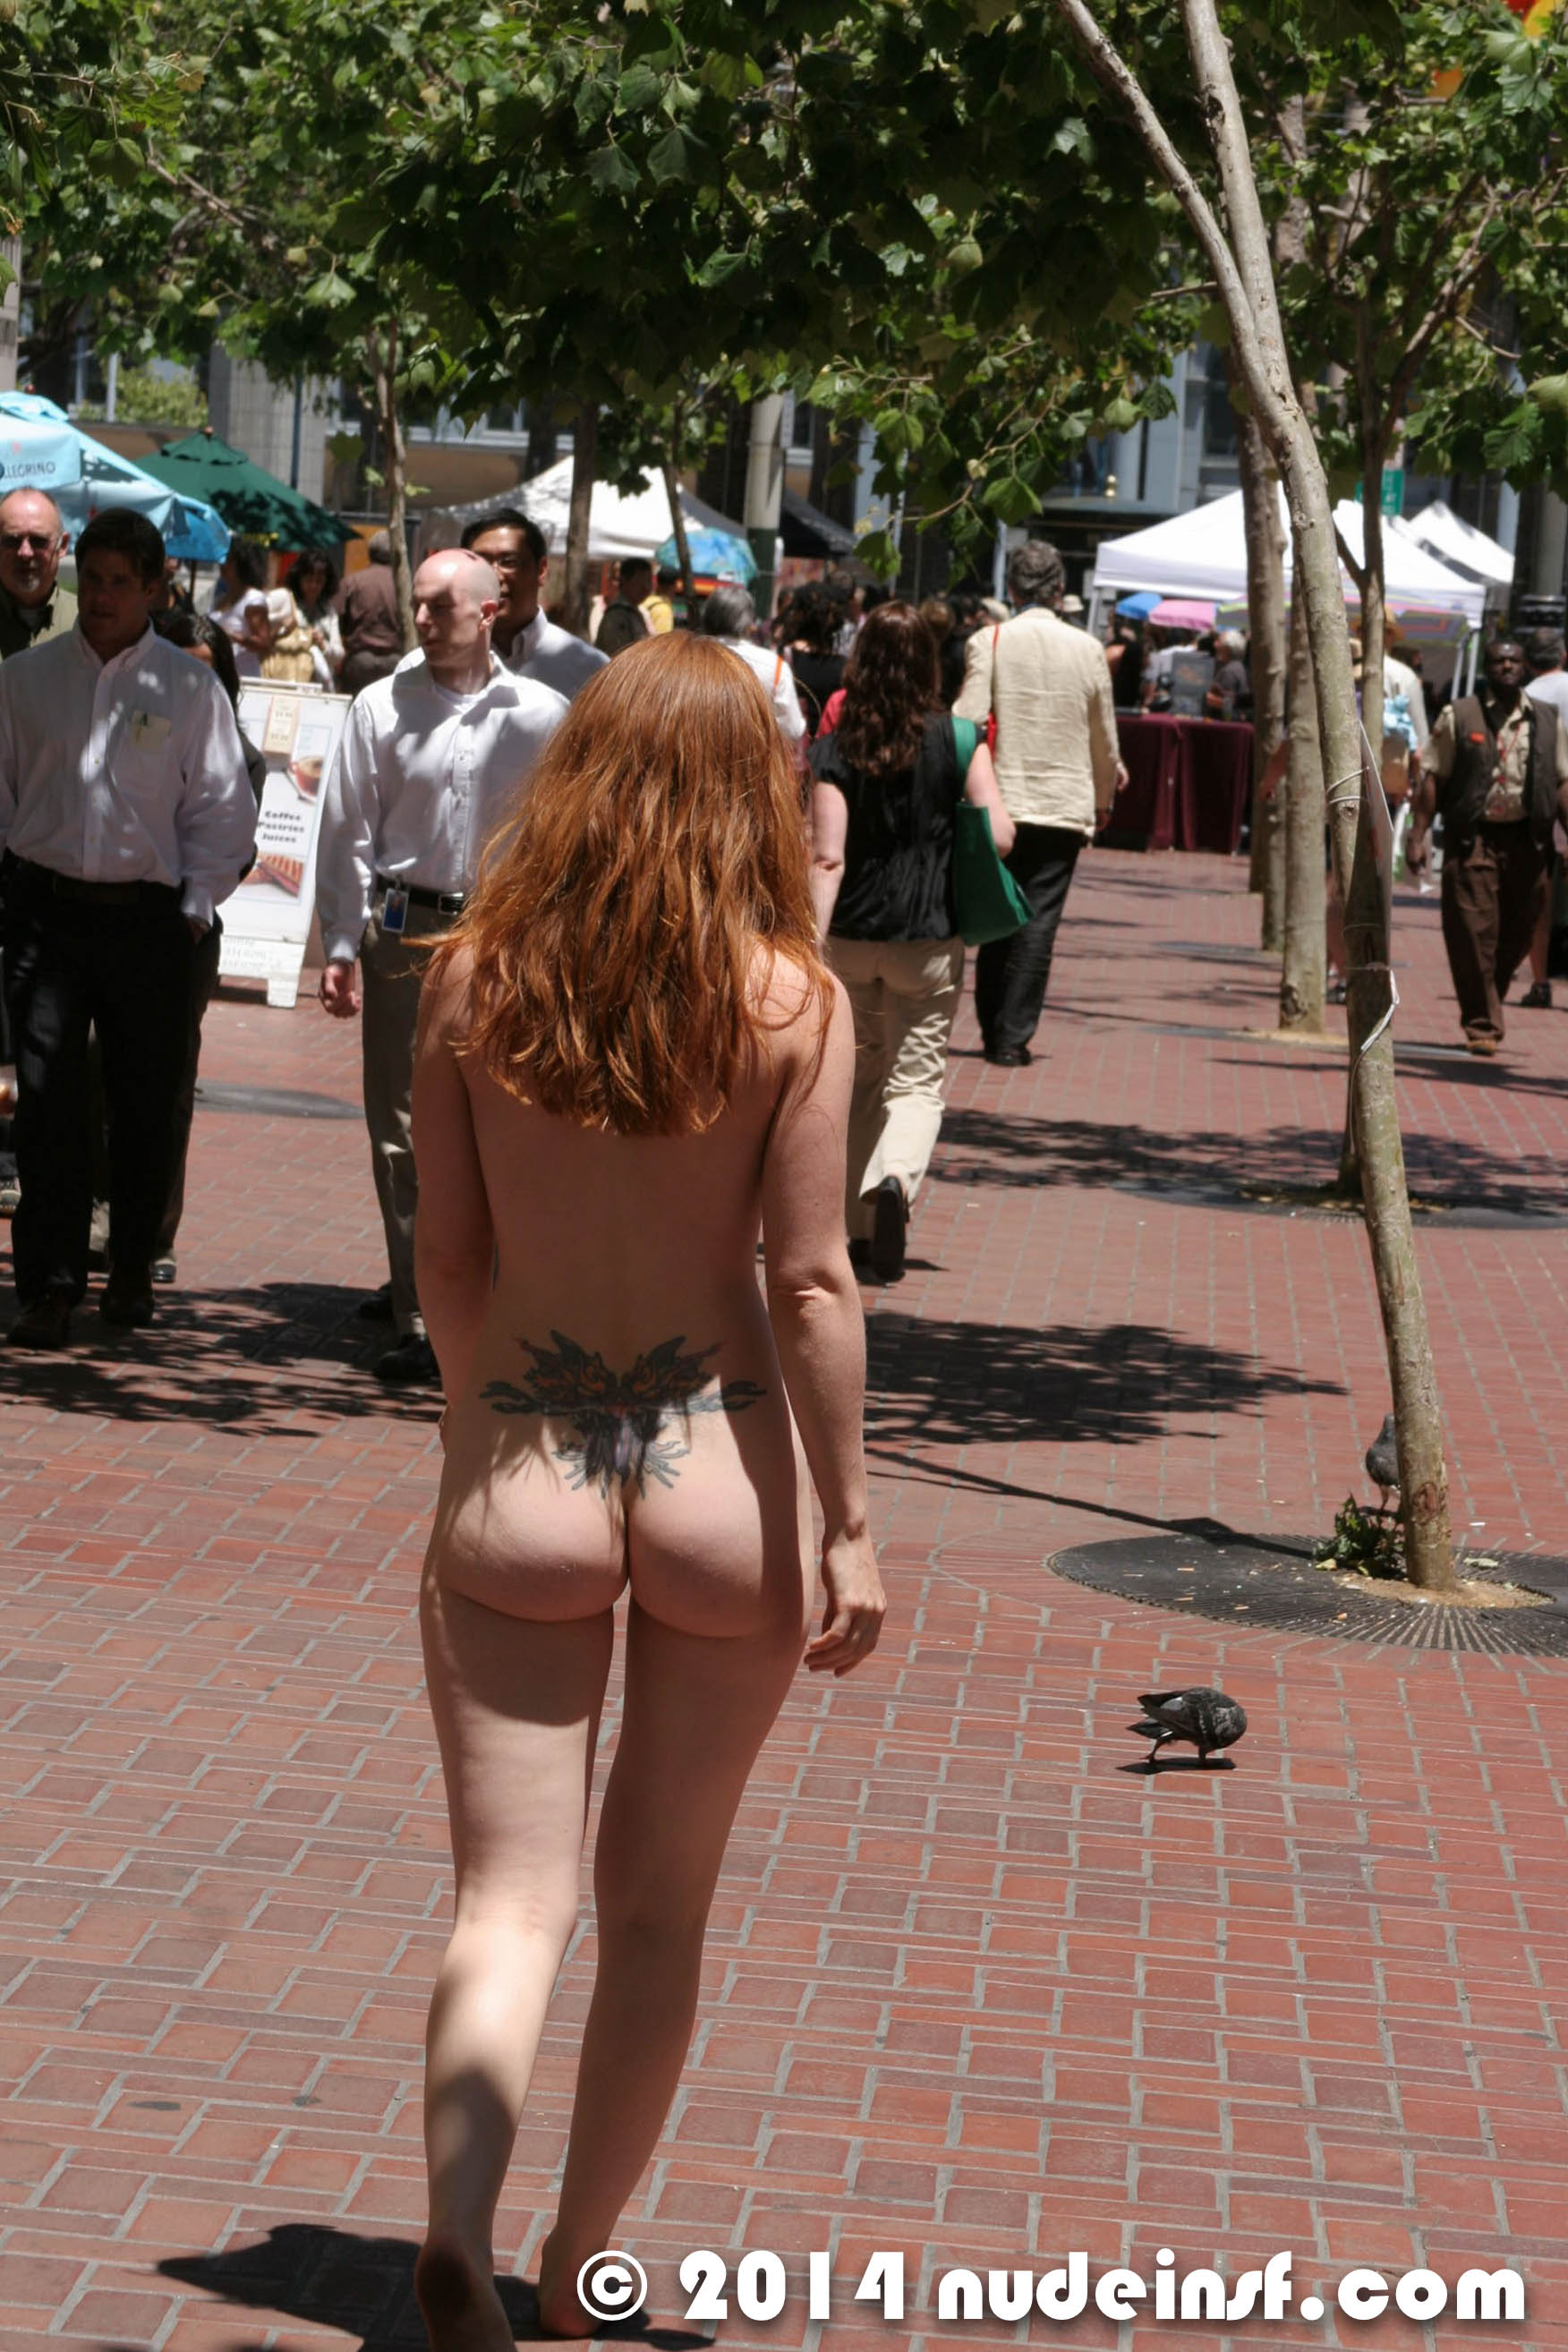 Amber Dawn Nude nude in san francisco: exhibitionist amber naked at street